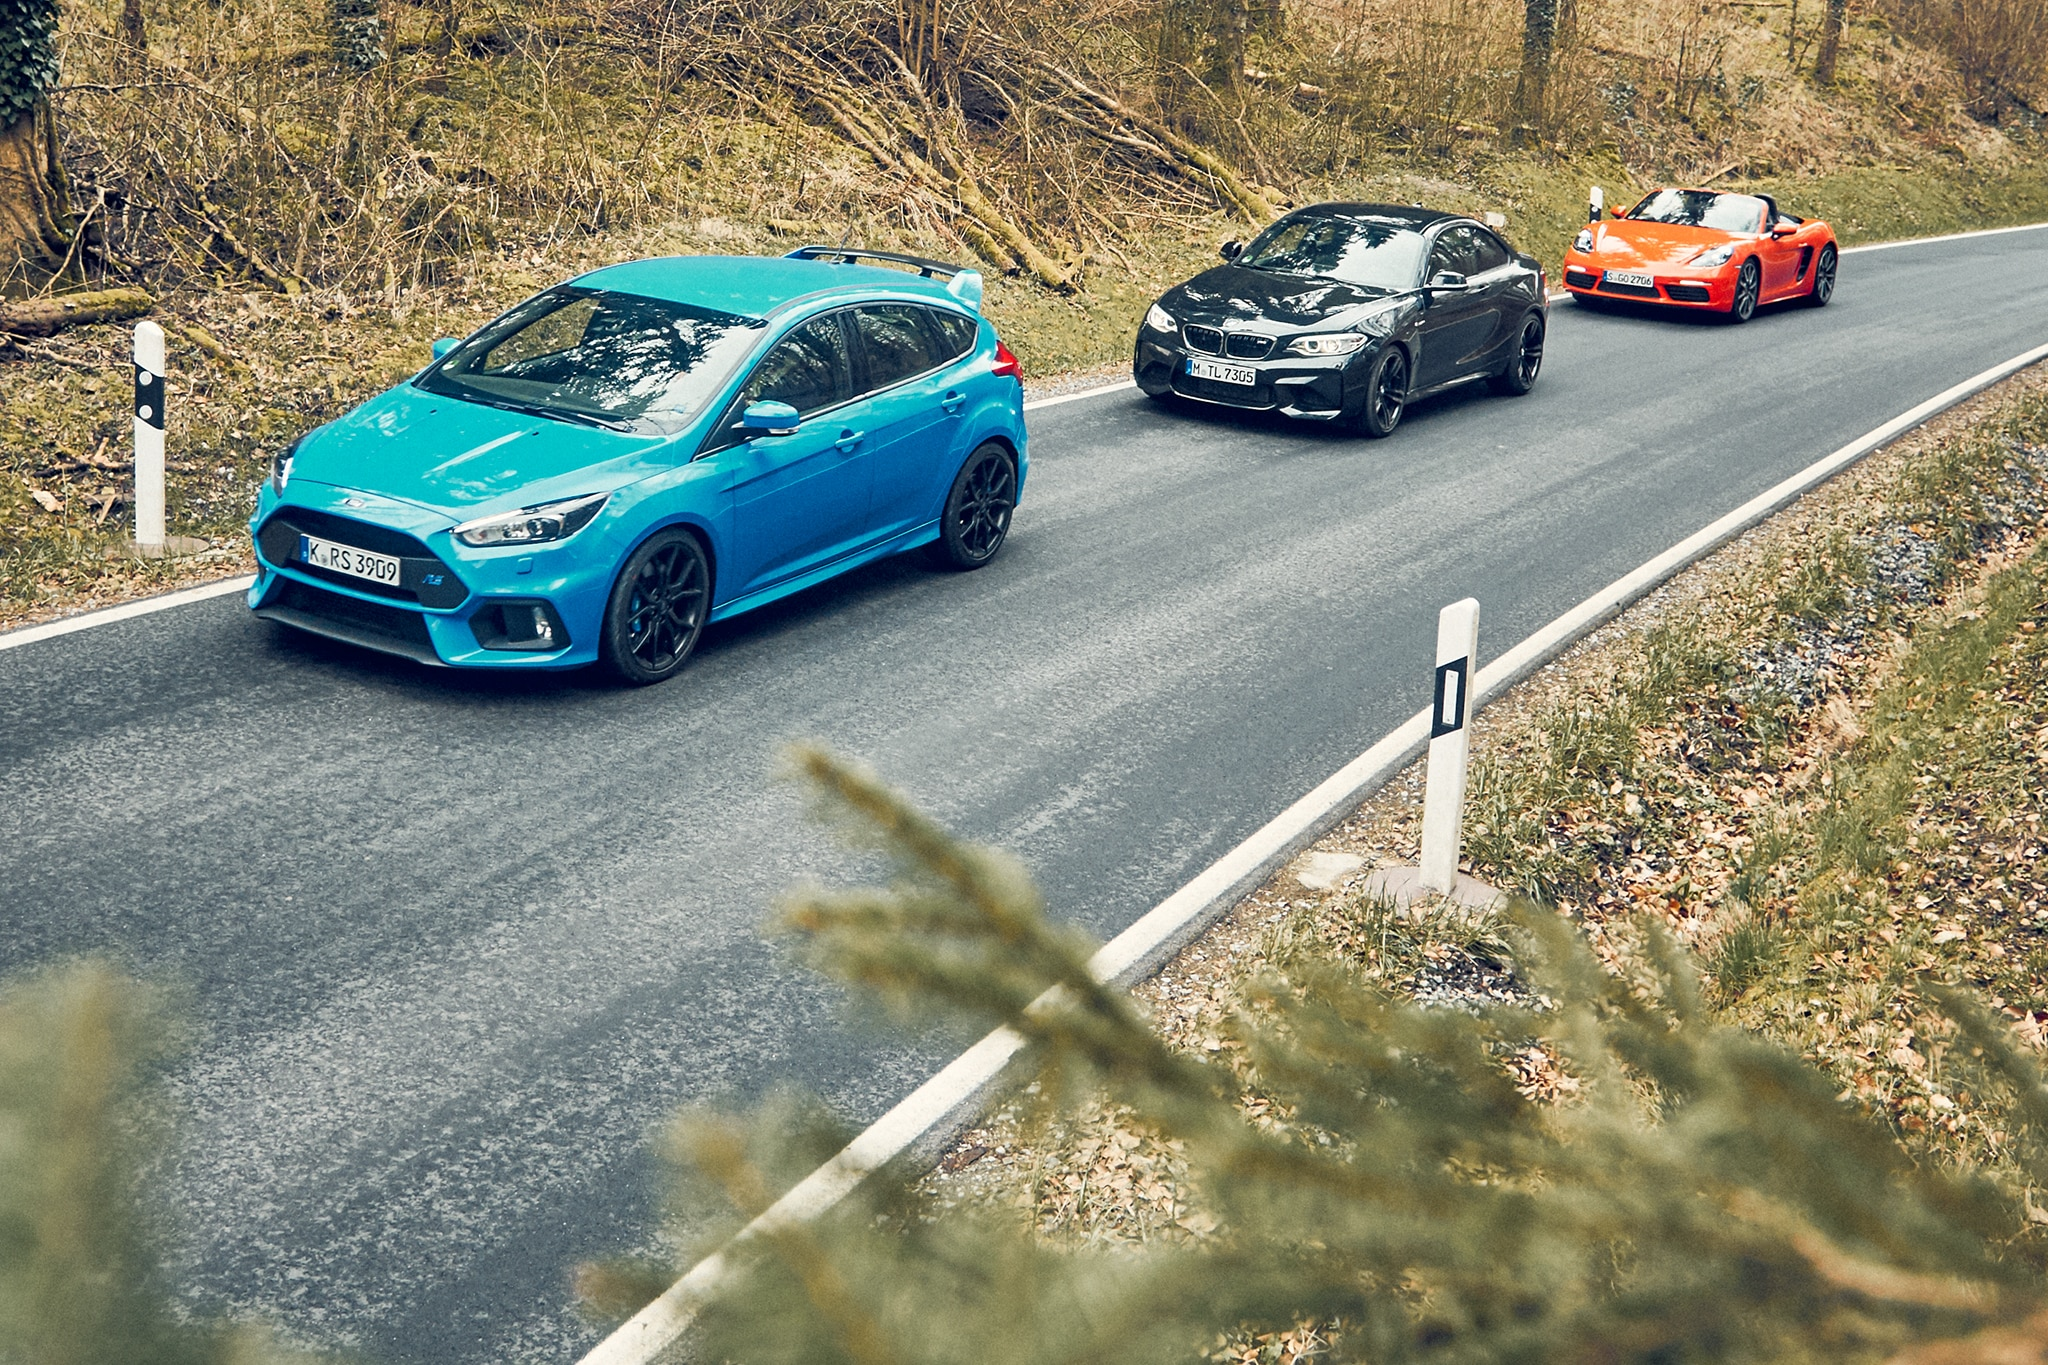 The Entertainers: BMW M2 vs  Ford Focus RS vs  Porsche 718 Boxster S